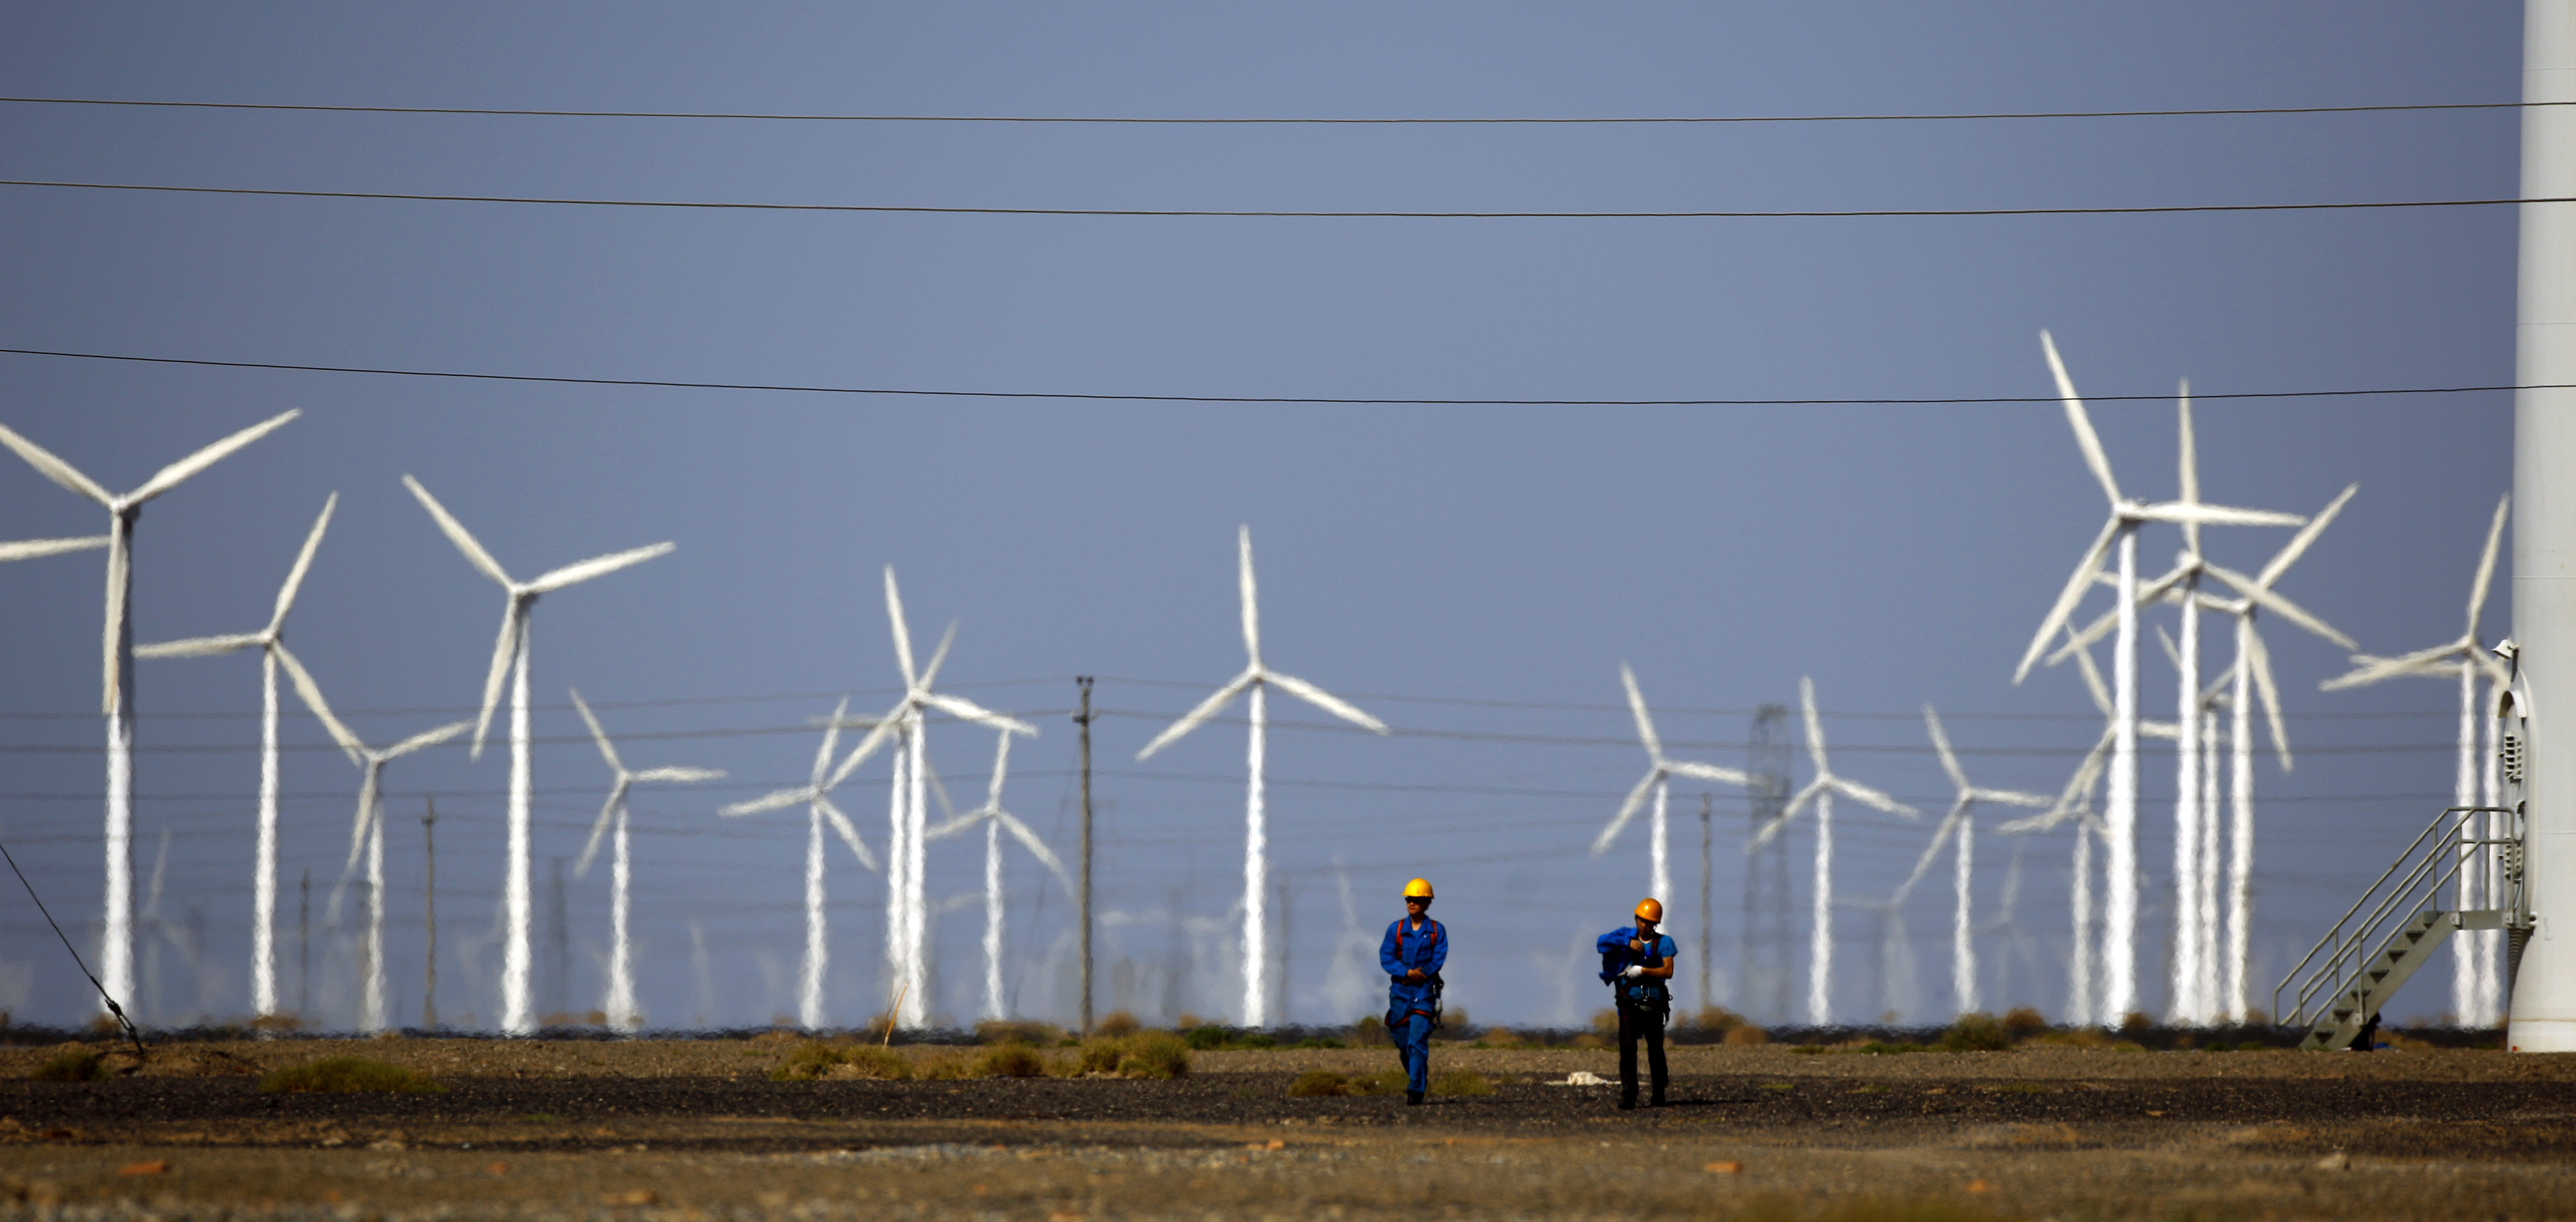 Workers walk near wind turbines for generating electricity, at a wind farm in Guazhou, 950km northwest of Lanzhou, Gansu Province